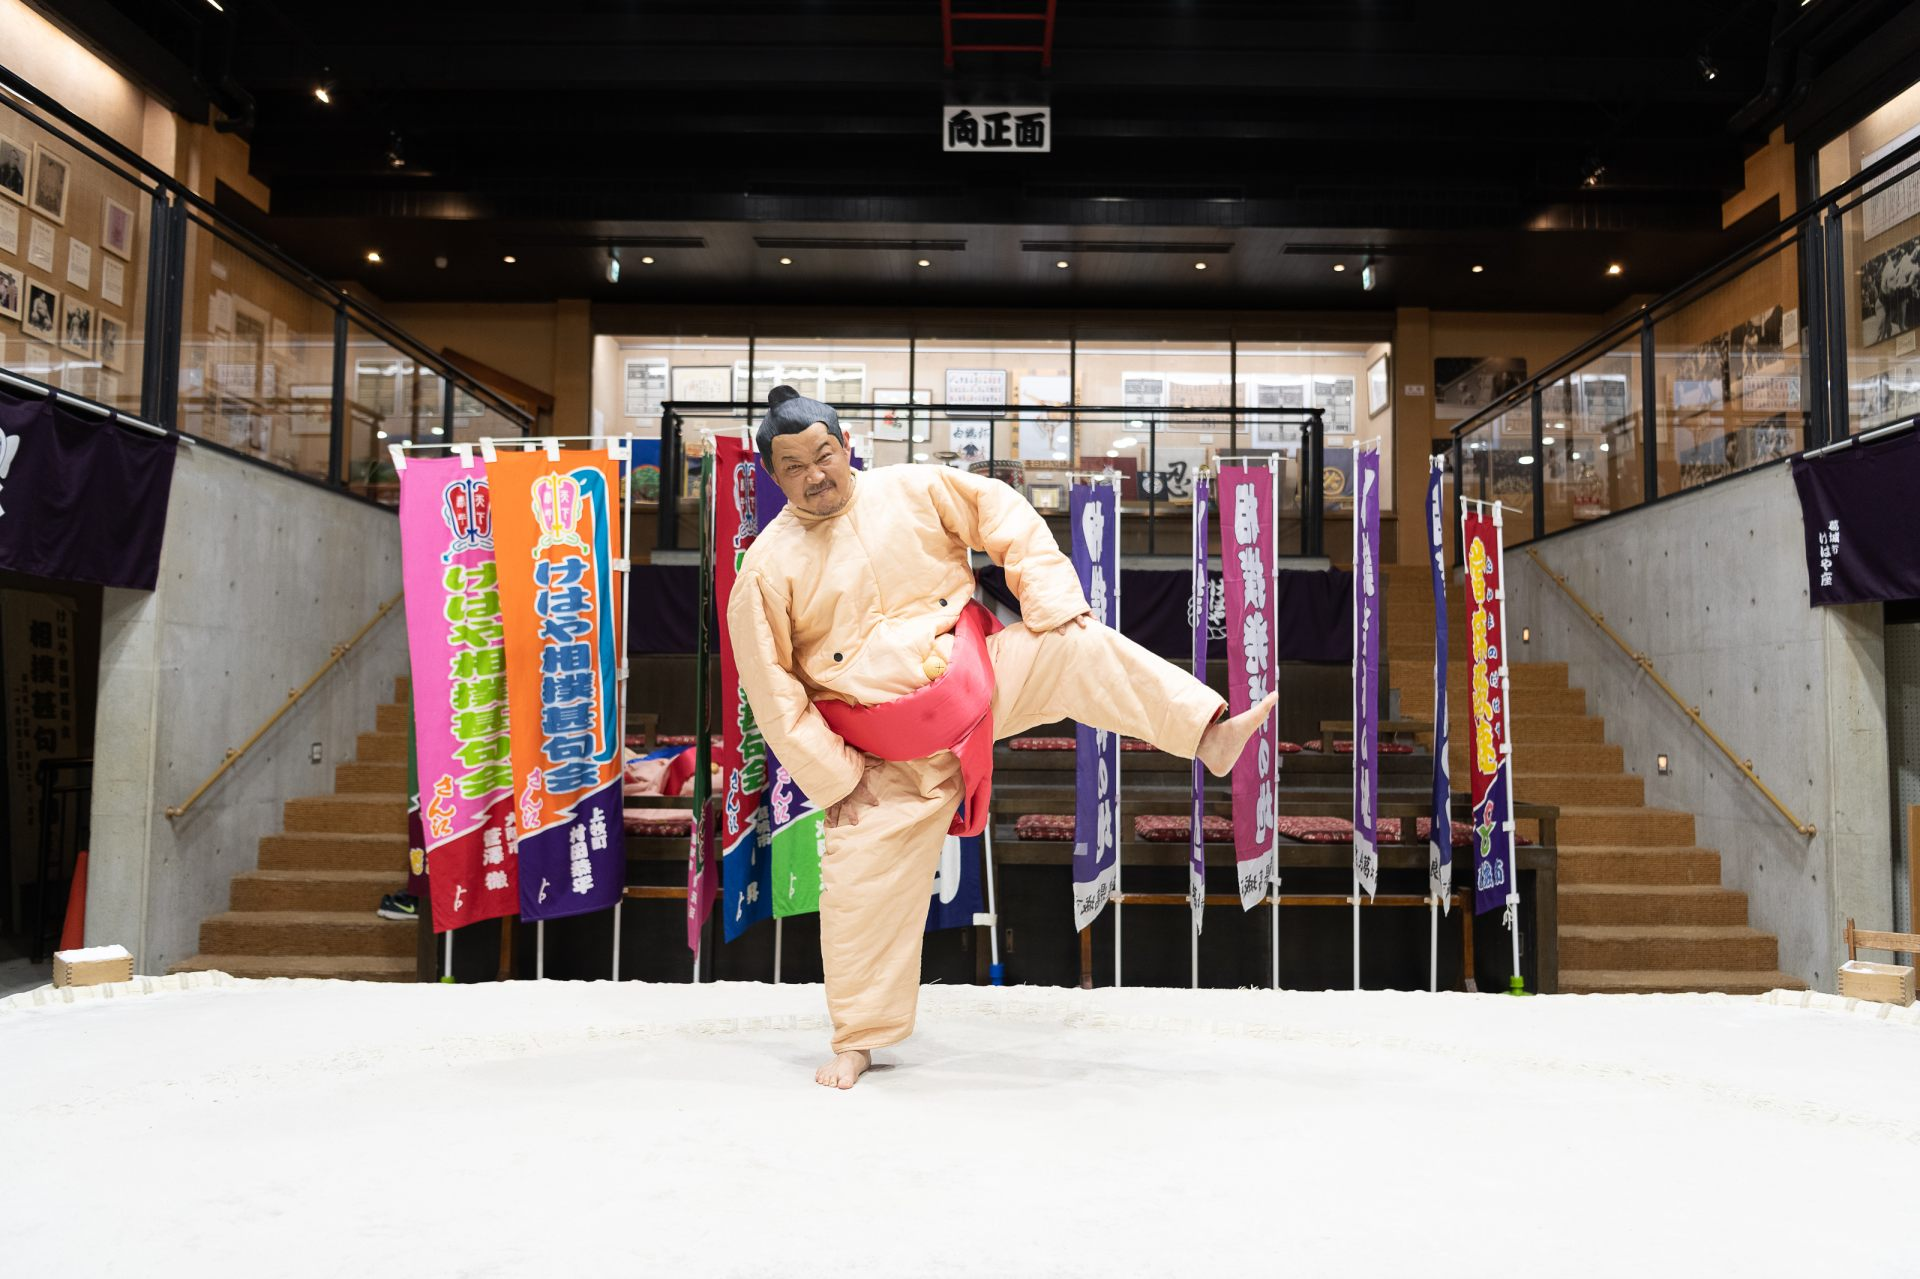 Try moving like a sumo wrestler by raising and stomping your legs one at a time.